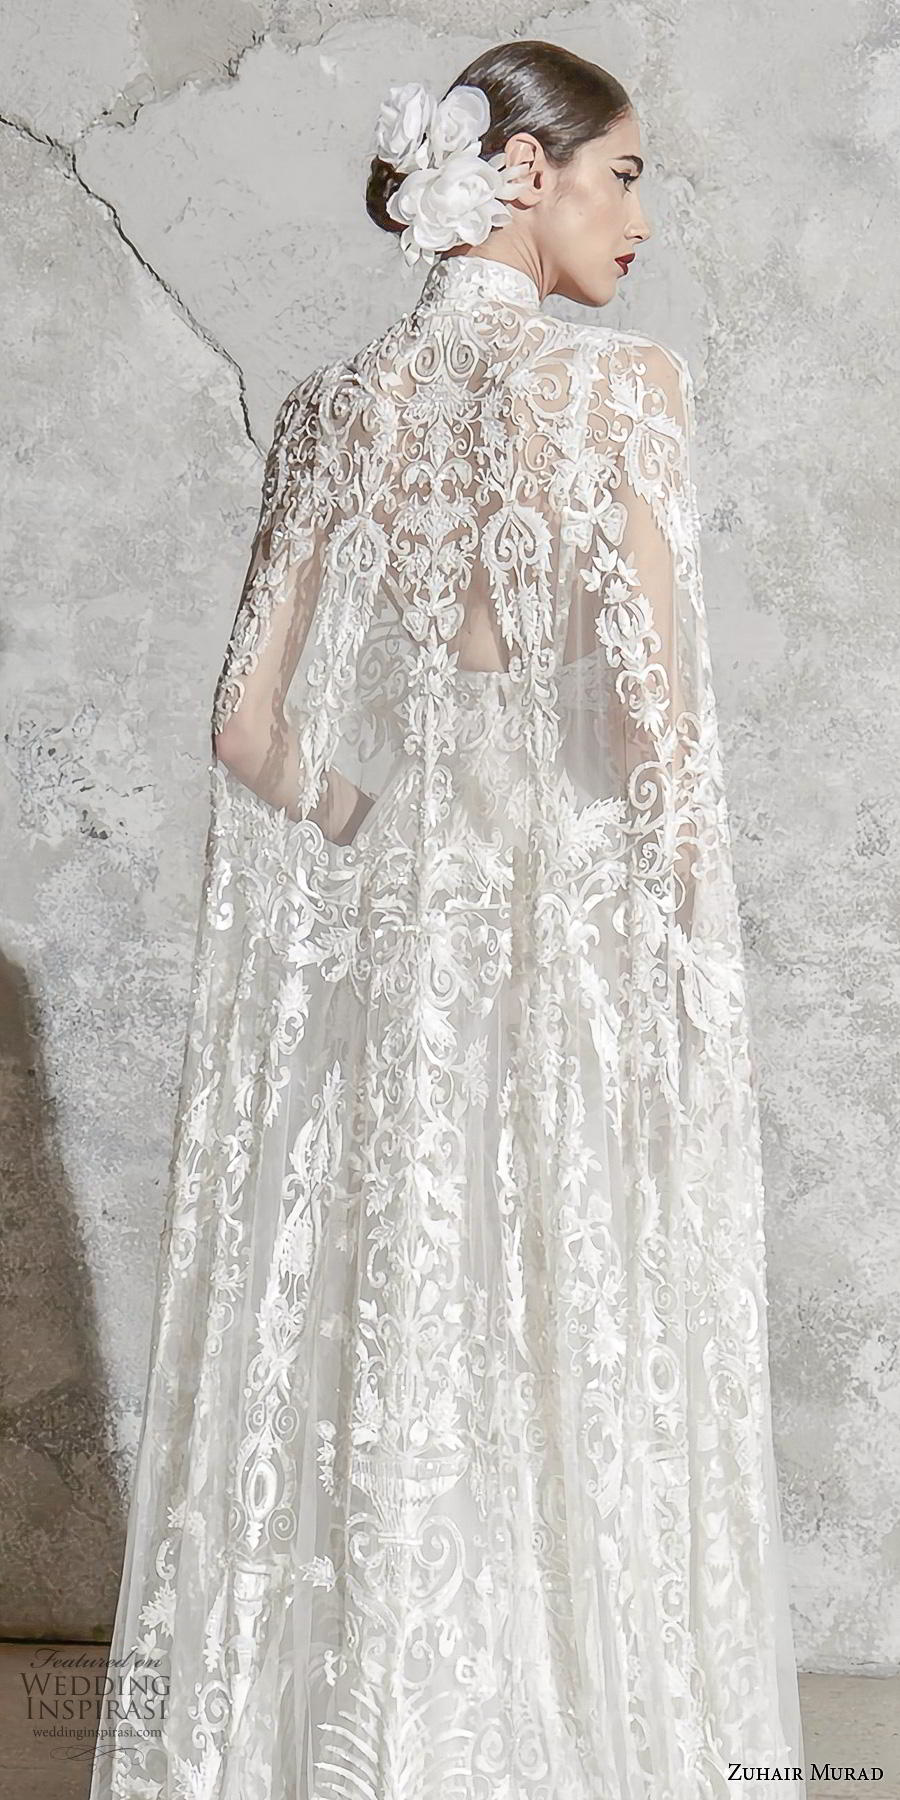 zuhair murad spring 2020 bridal sleeveless deep v neck full embellishment elegant princess a  line wedding dress with cape (8) zbv